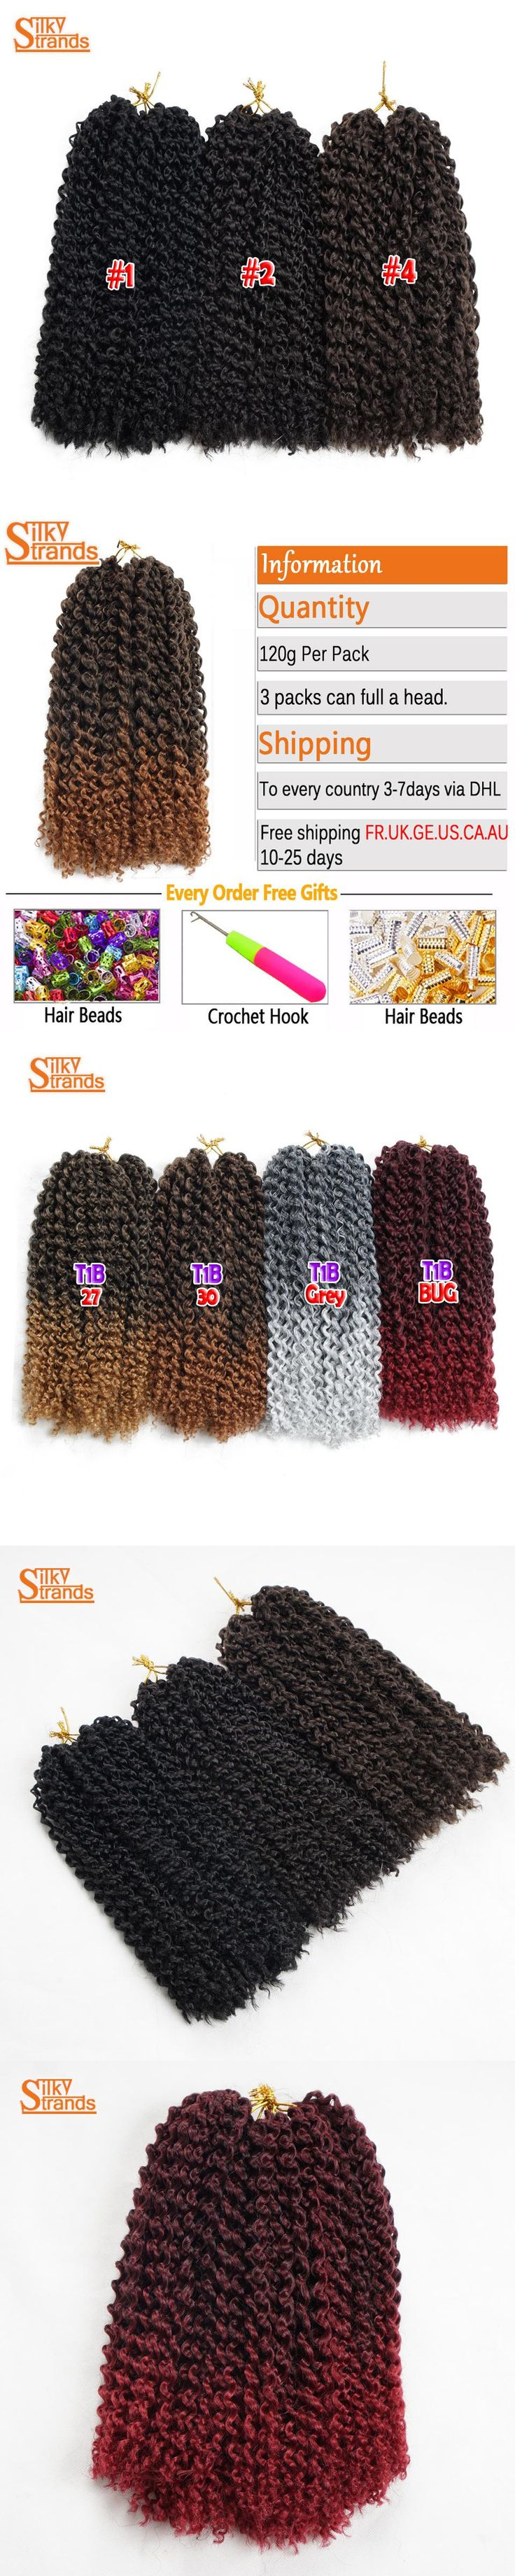 Silky Strands Synthetic Crochet Kinky Curly Hair Afro Kanekalon Crochet Braids 12Inch Short Crochet Braid Hair Bulk Braiding